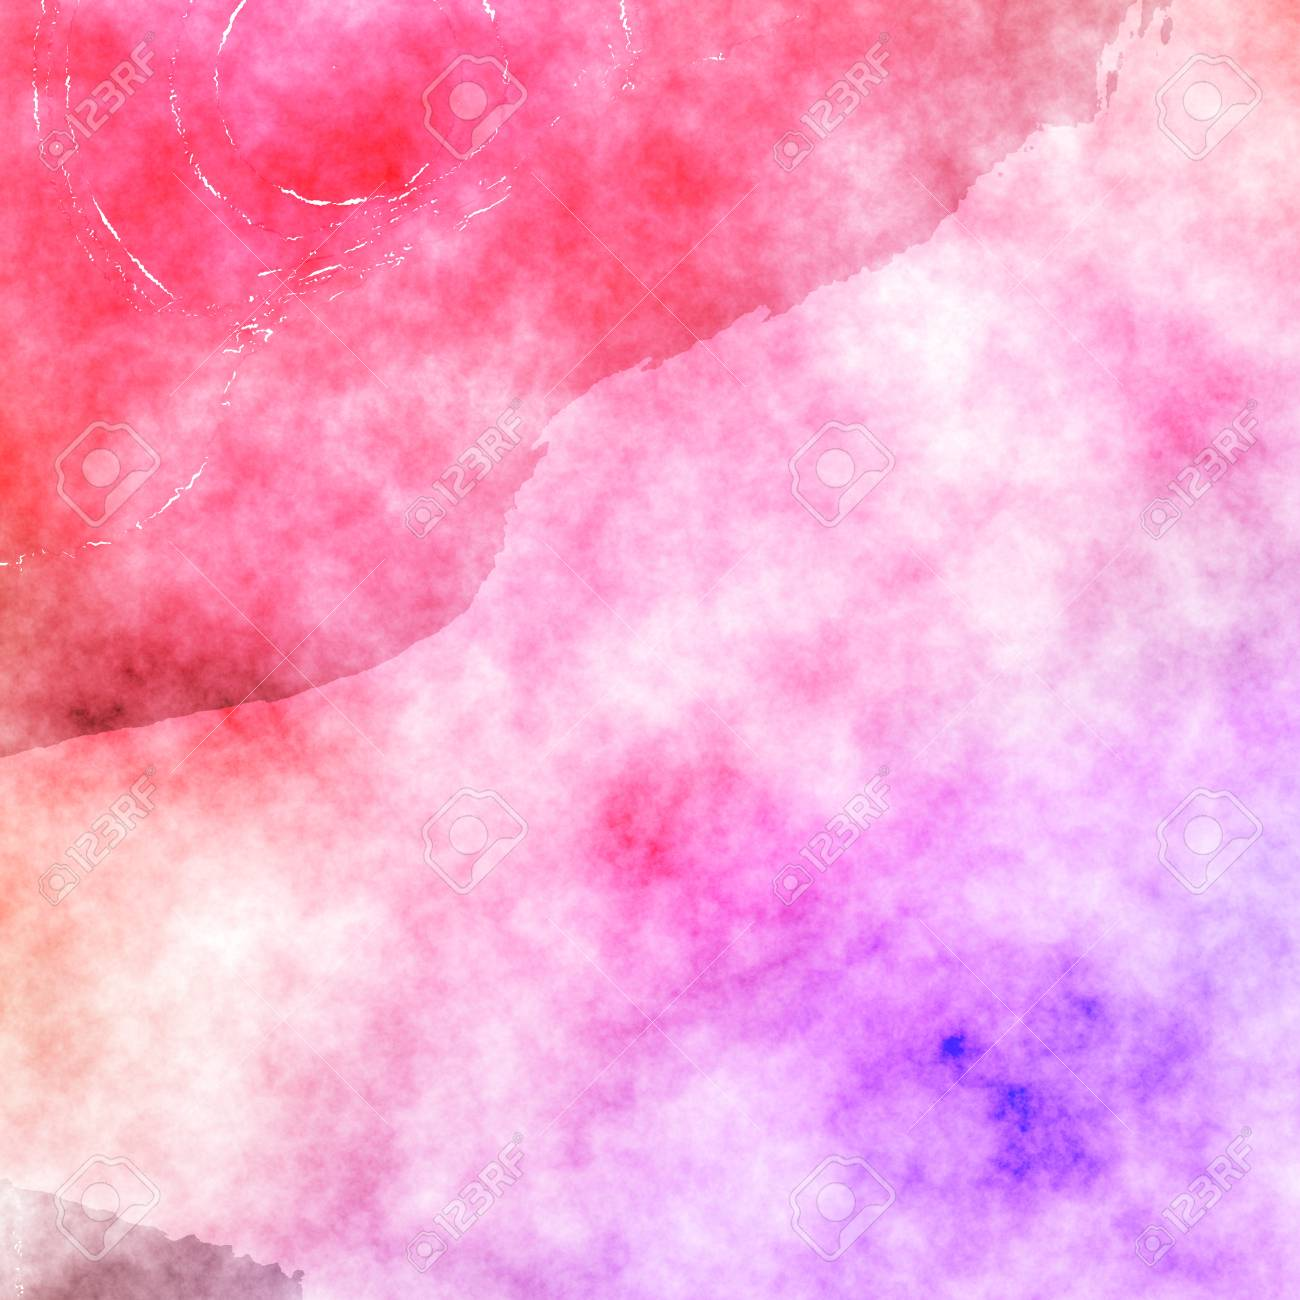 Pink Violet Watercolor Painting Texture Effect Beautiful Background Design Graphic In High Resolution For Your